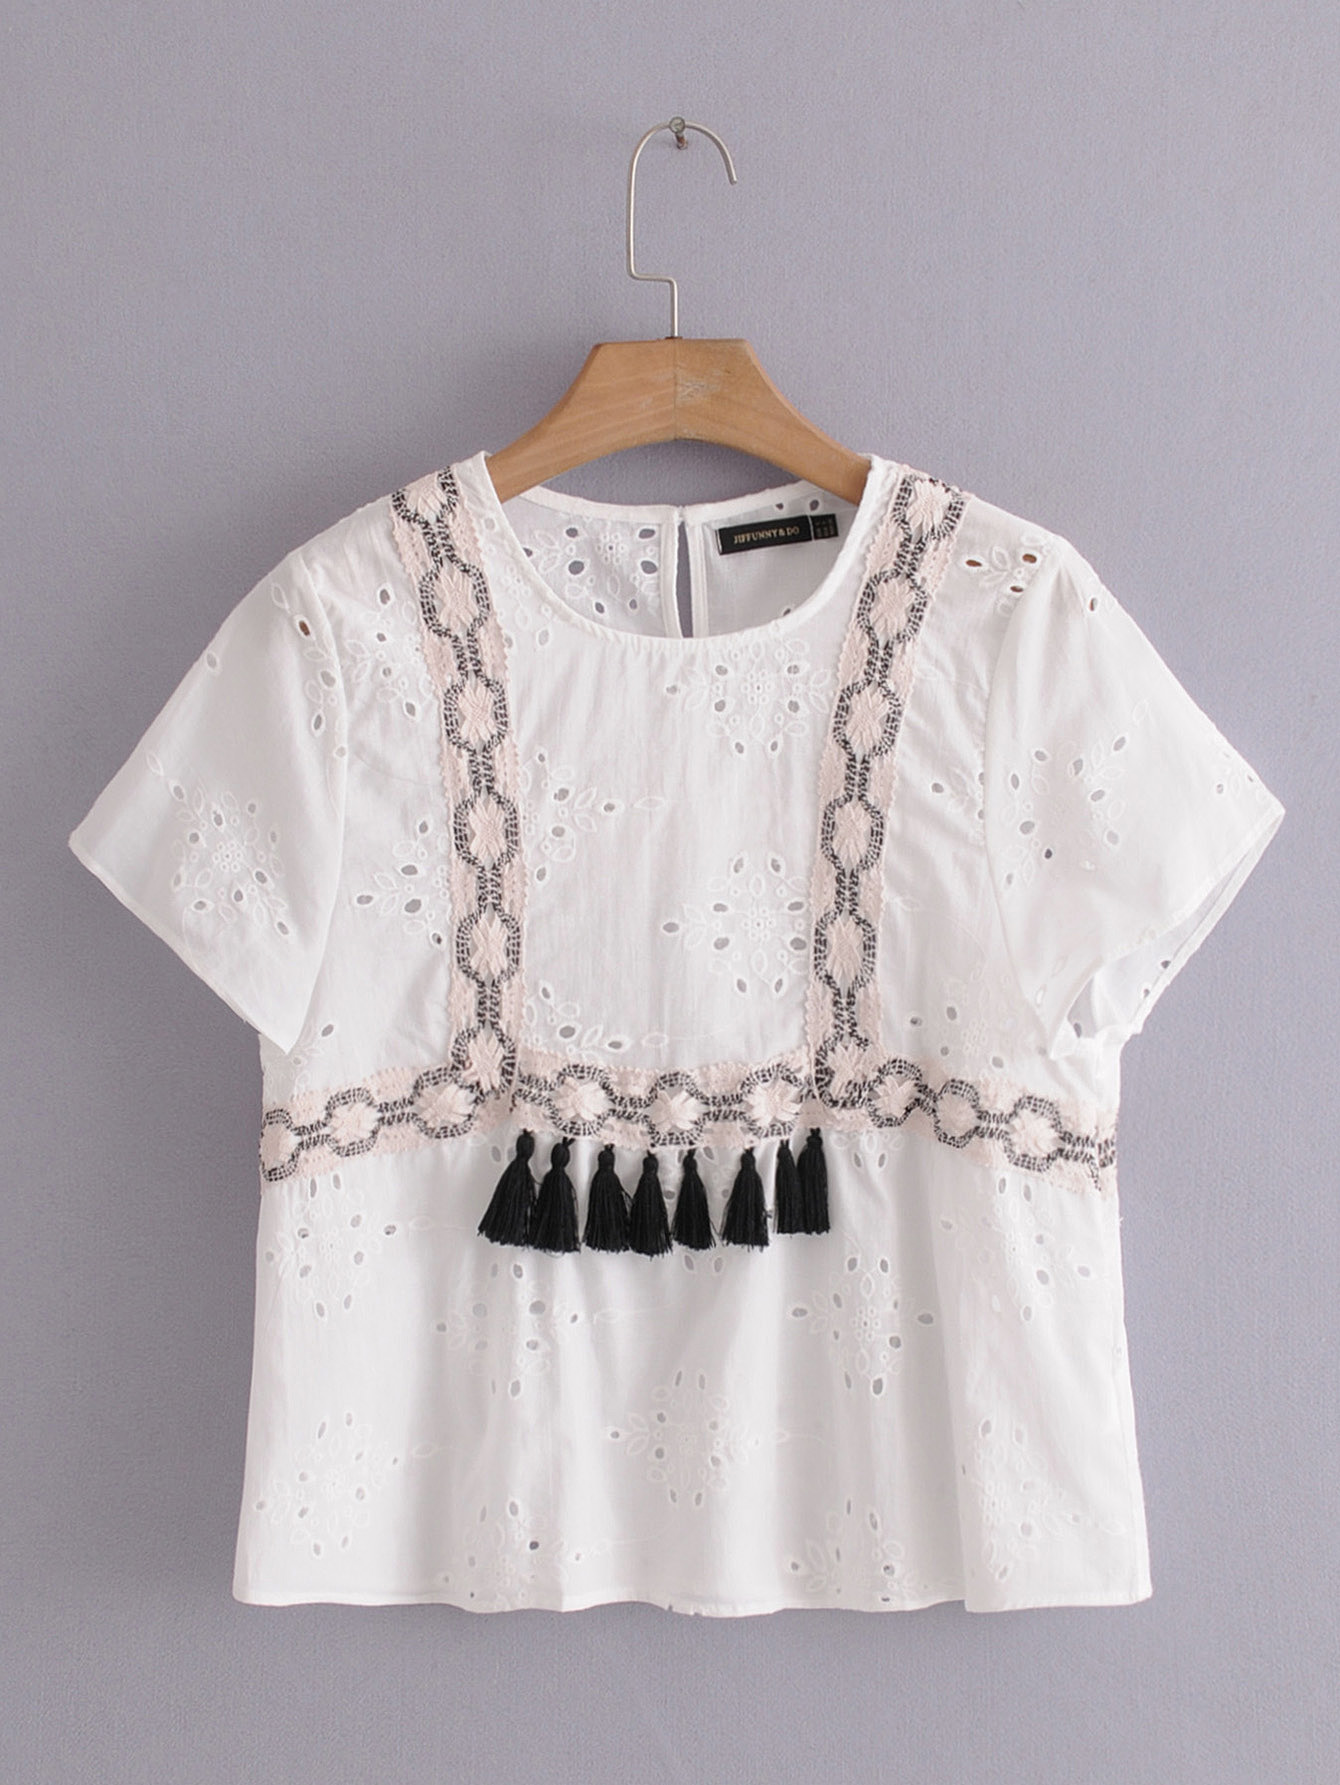 Cotton Fashionshirt(White-S) NHAM4381-White-S